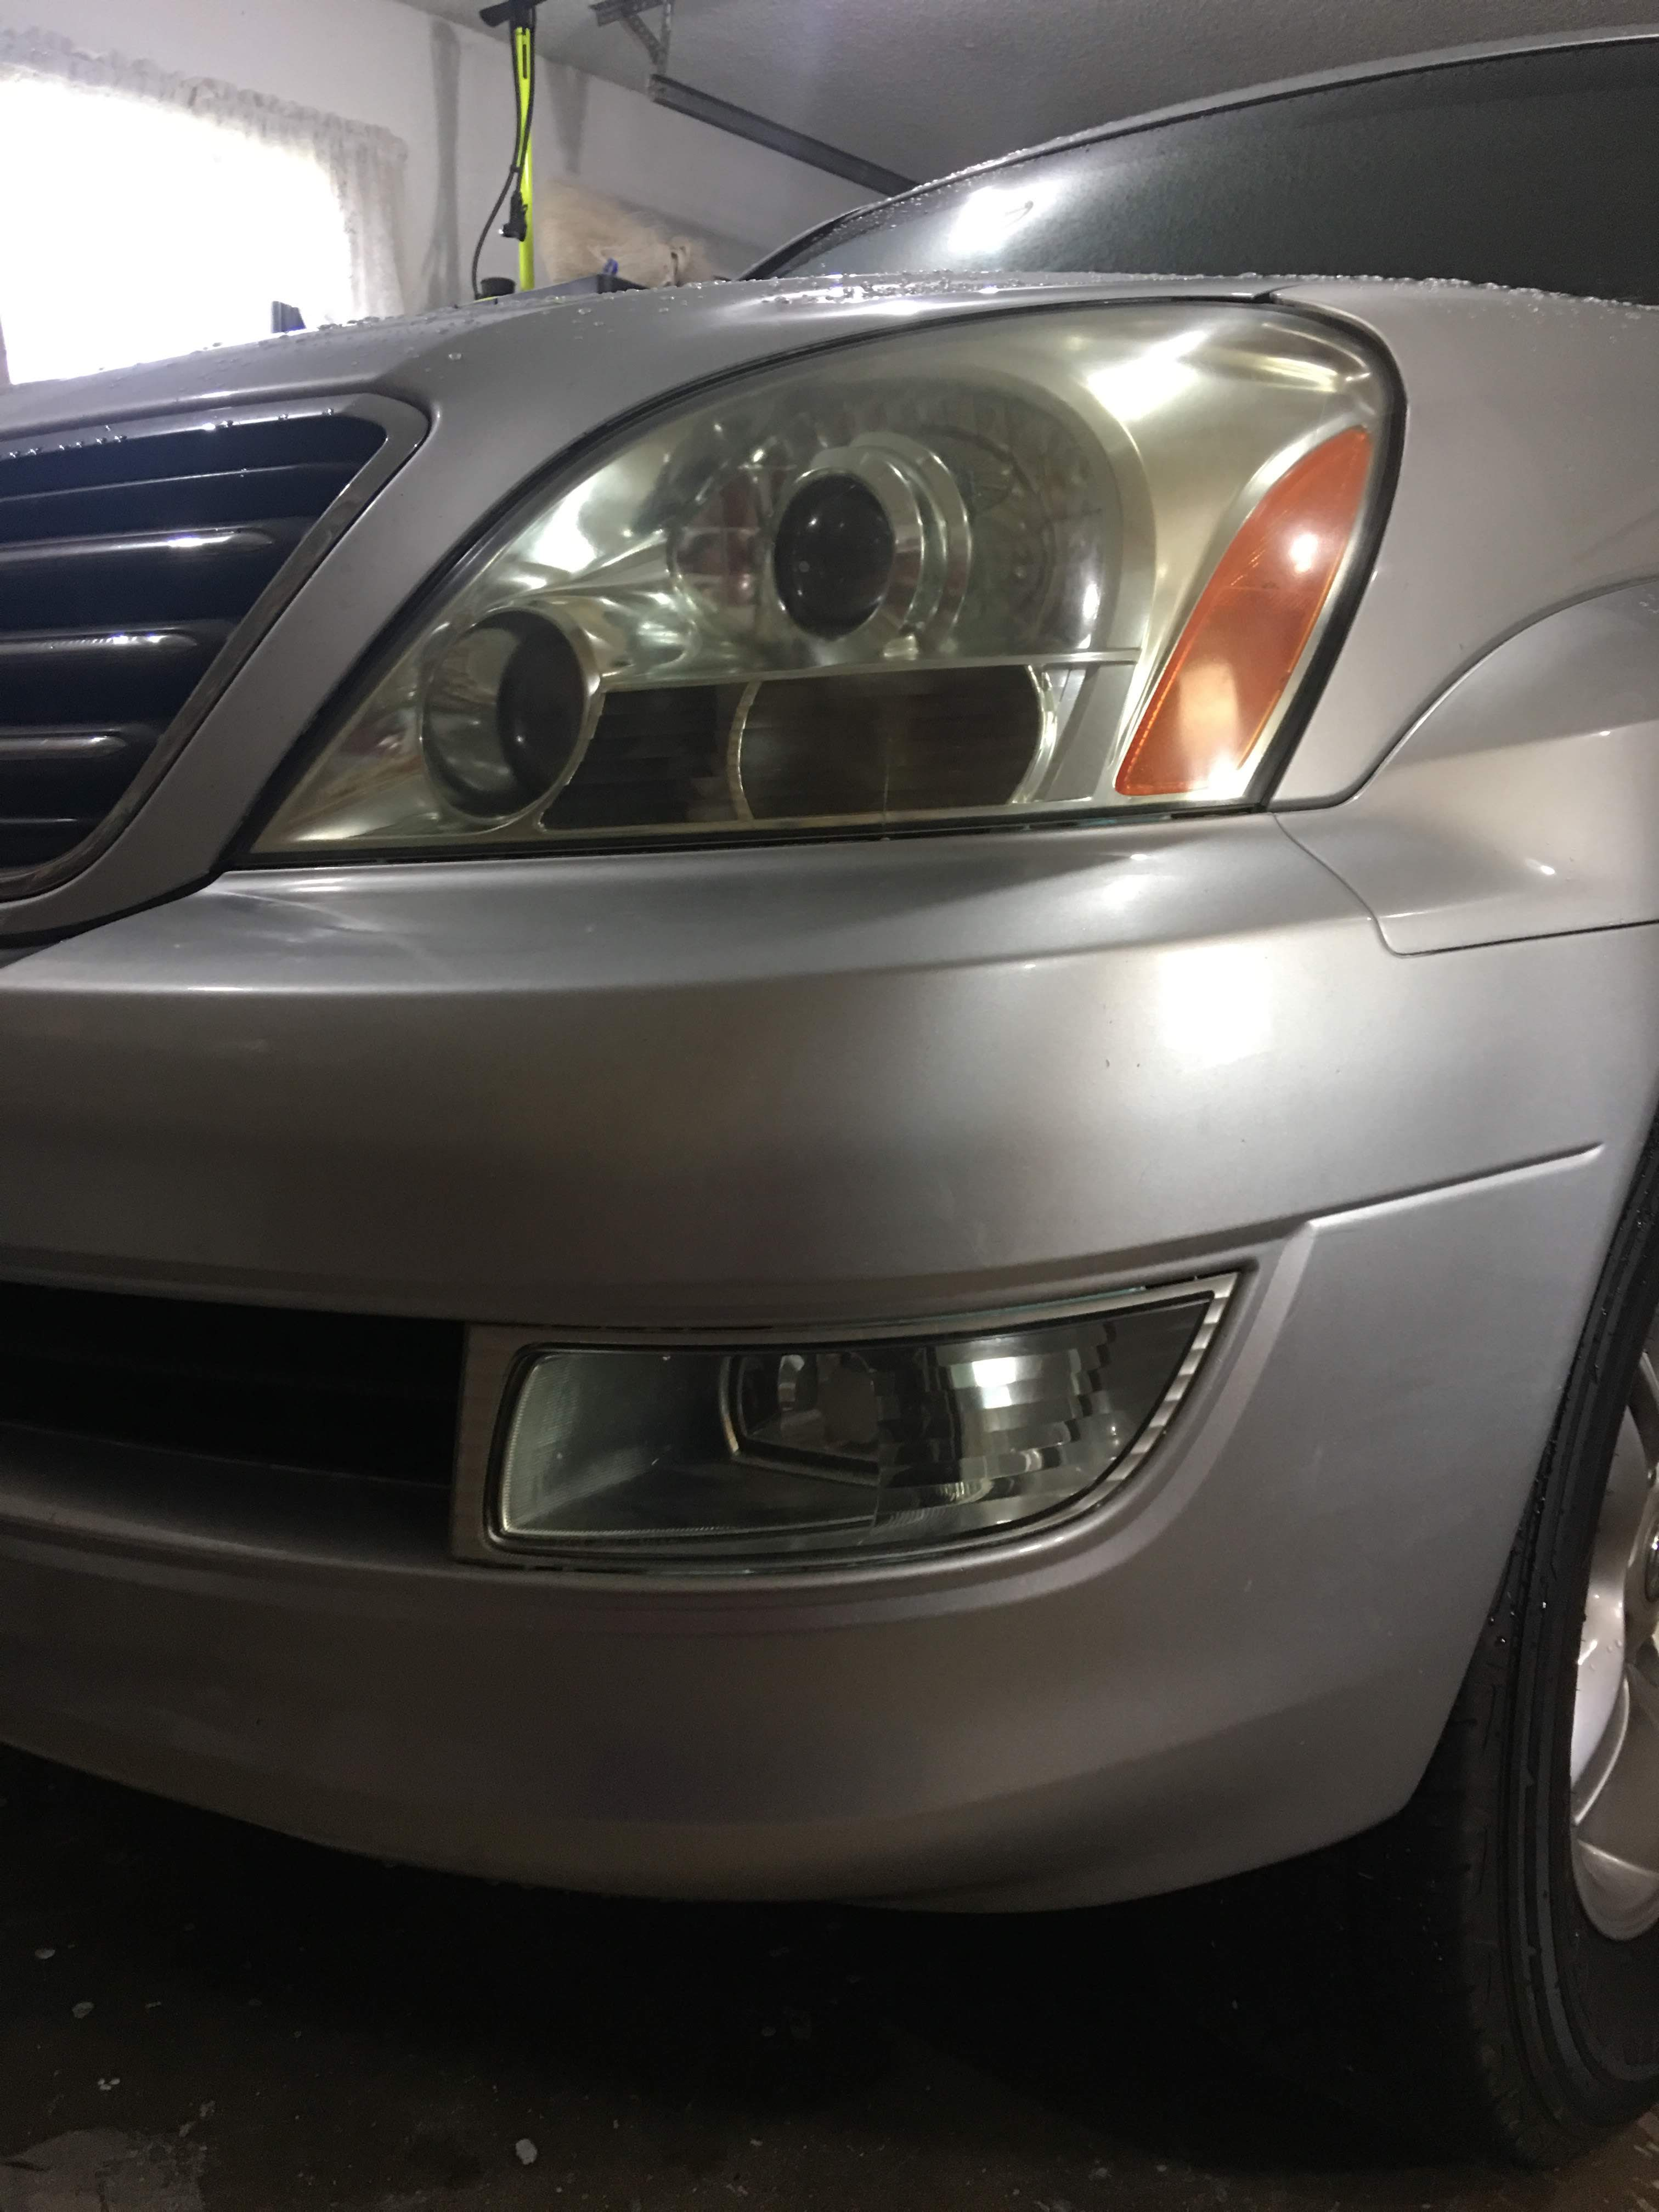 Clean Headlights